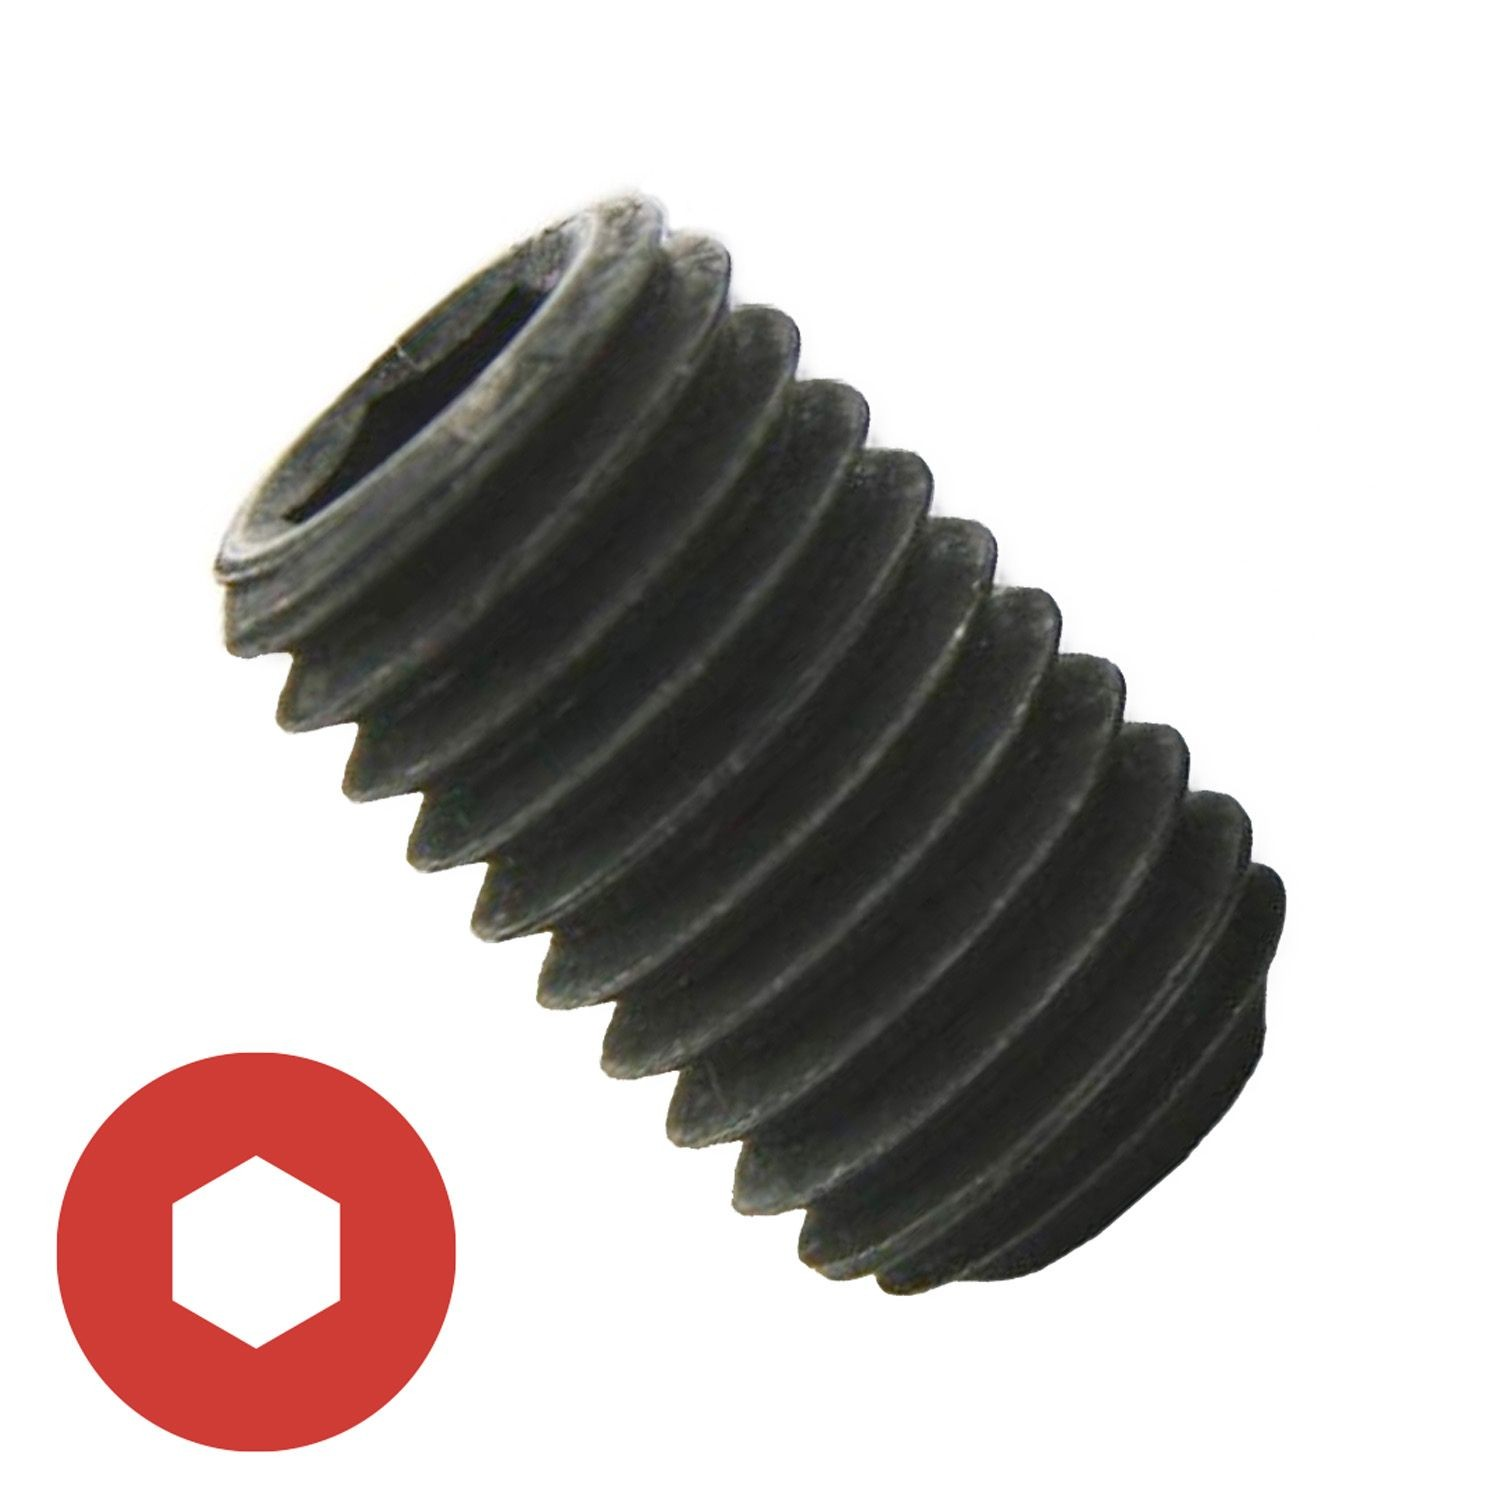 "#10-32 x 1-1/4"" Cup Point Socket Set Screw"